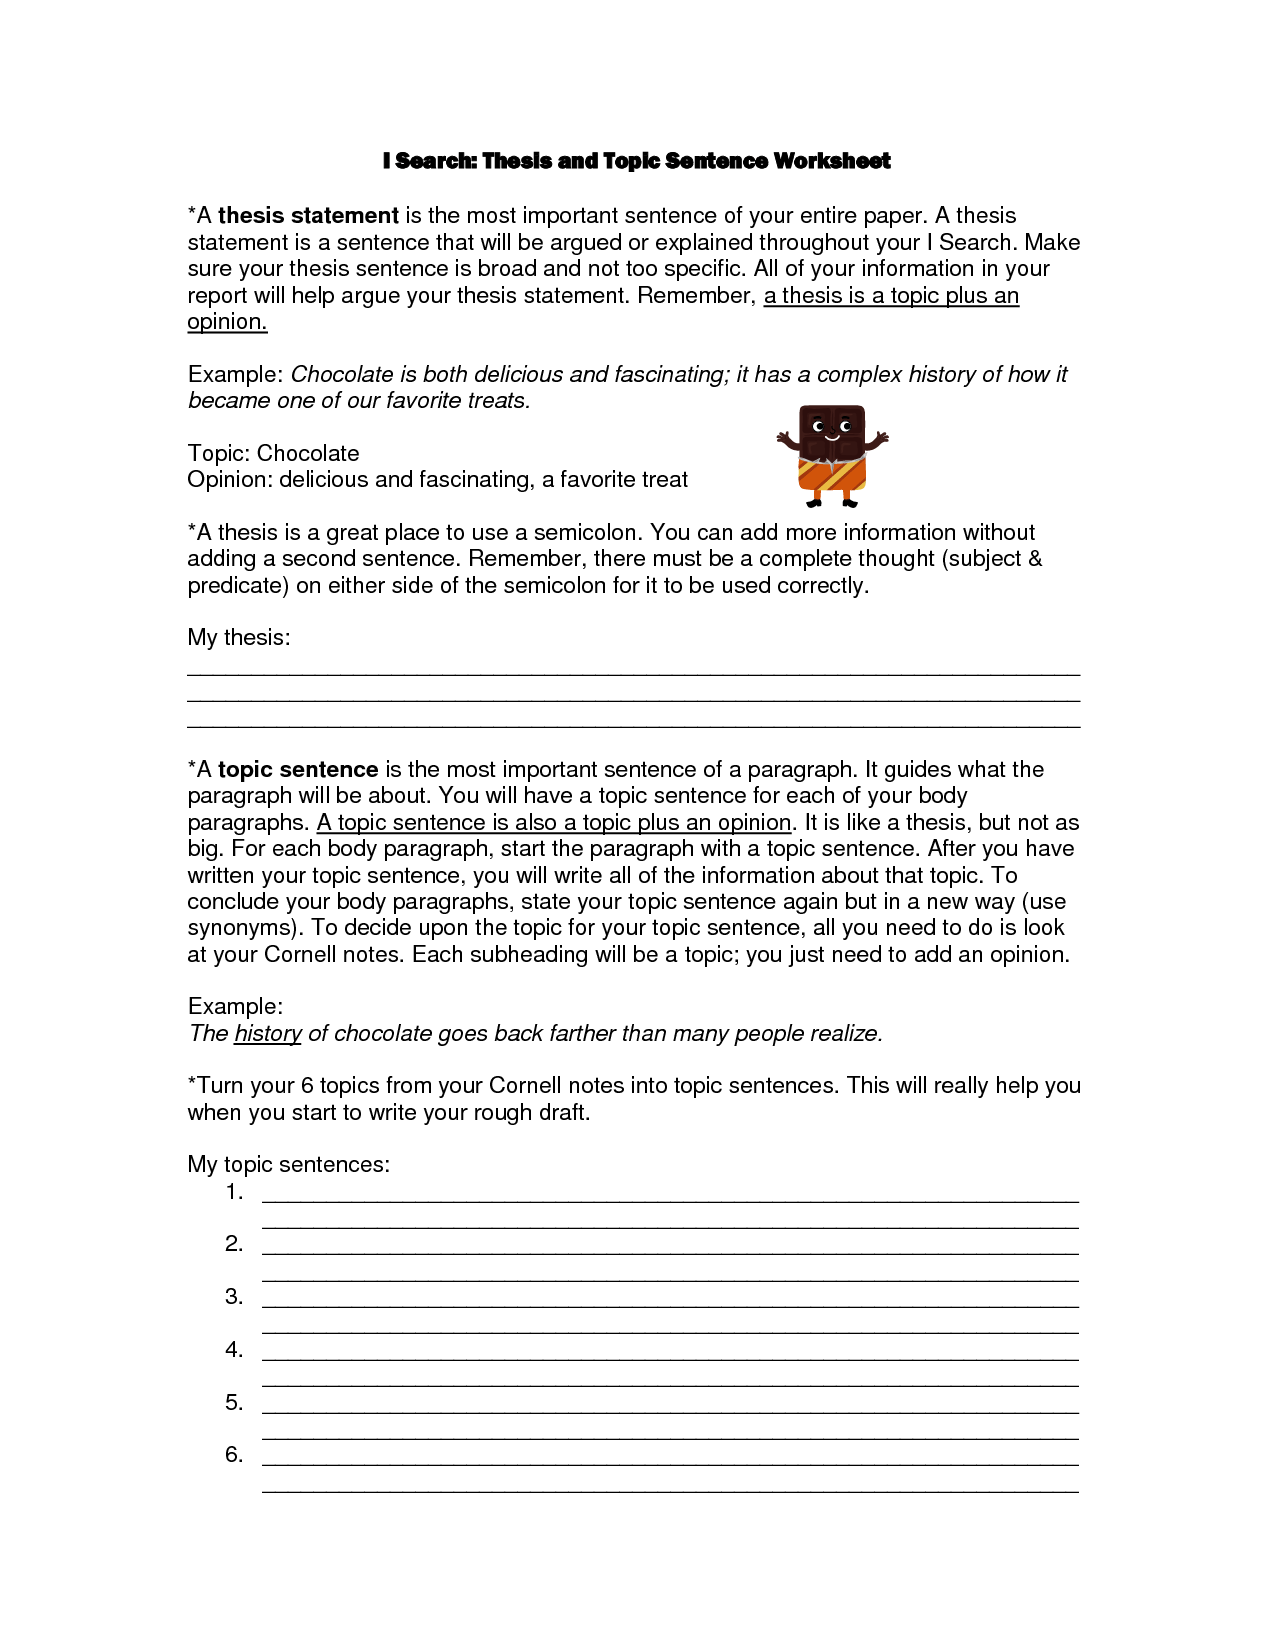 Worksheet Identifying Main Topic Ideas